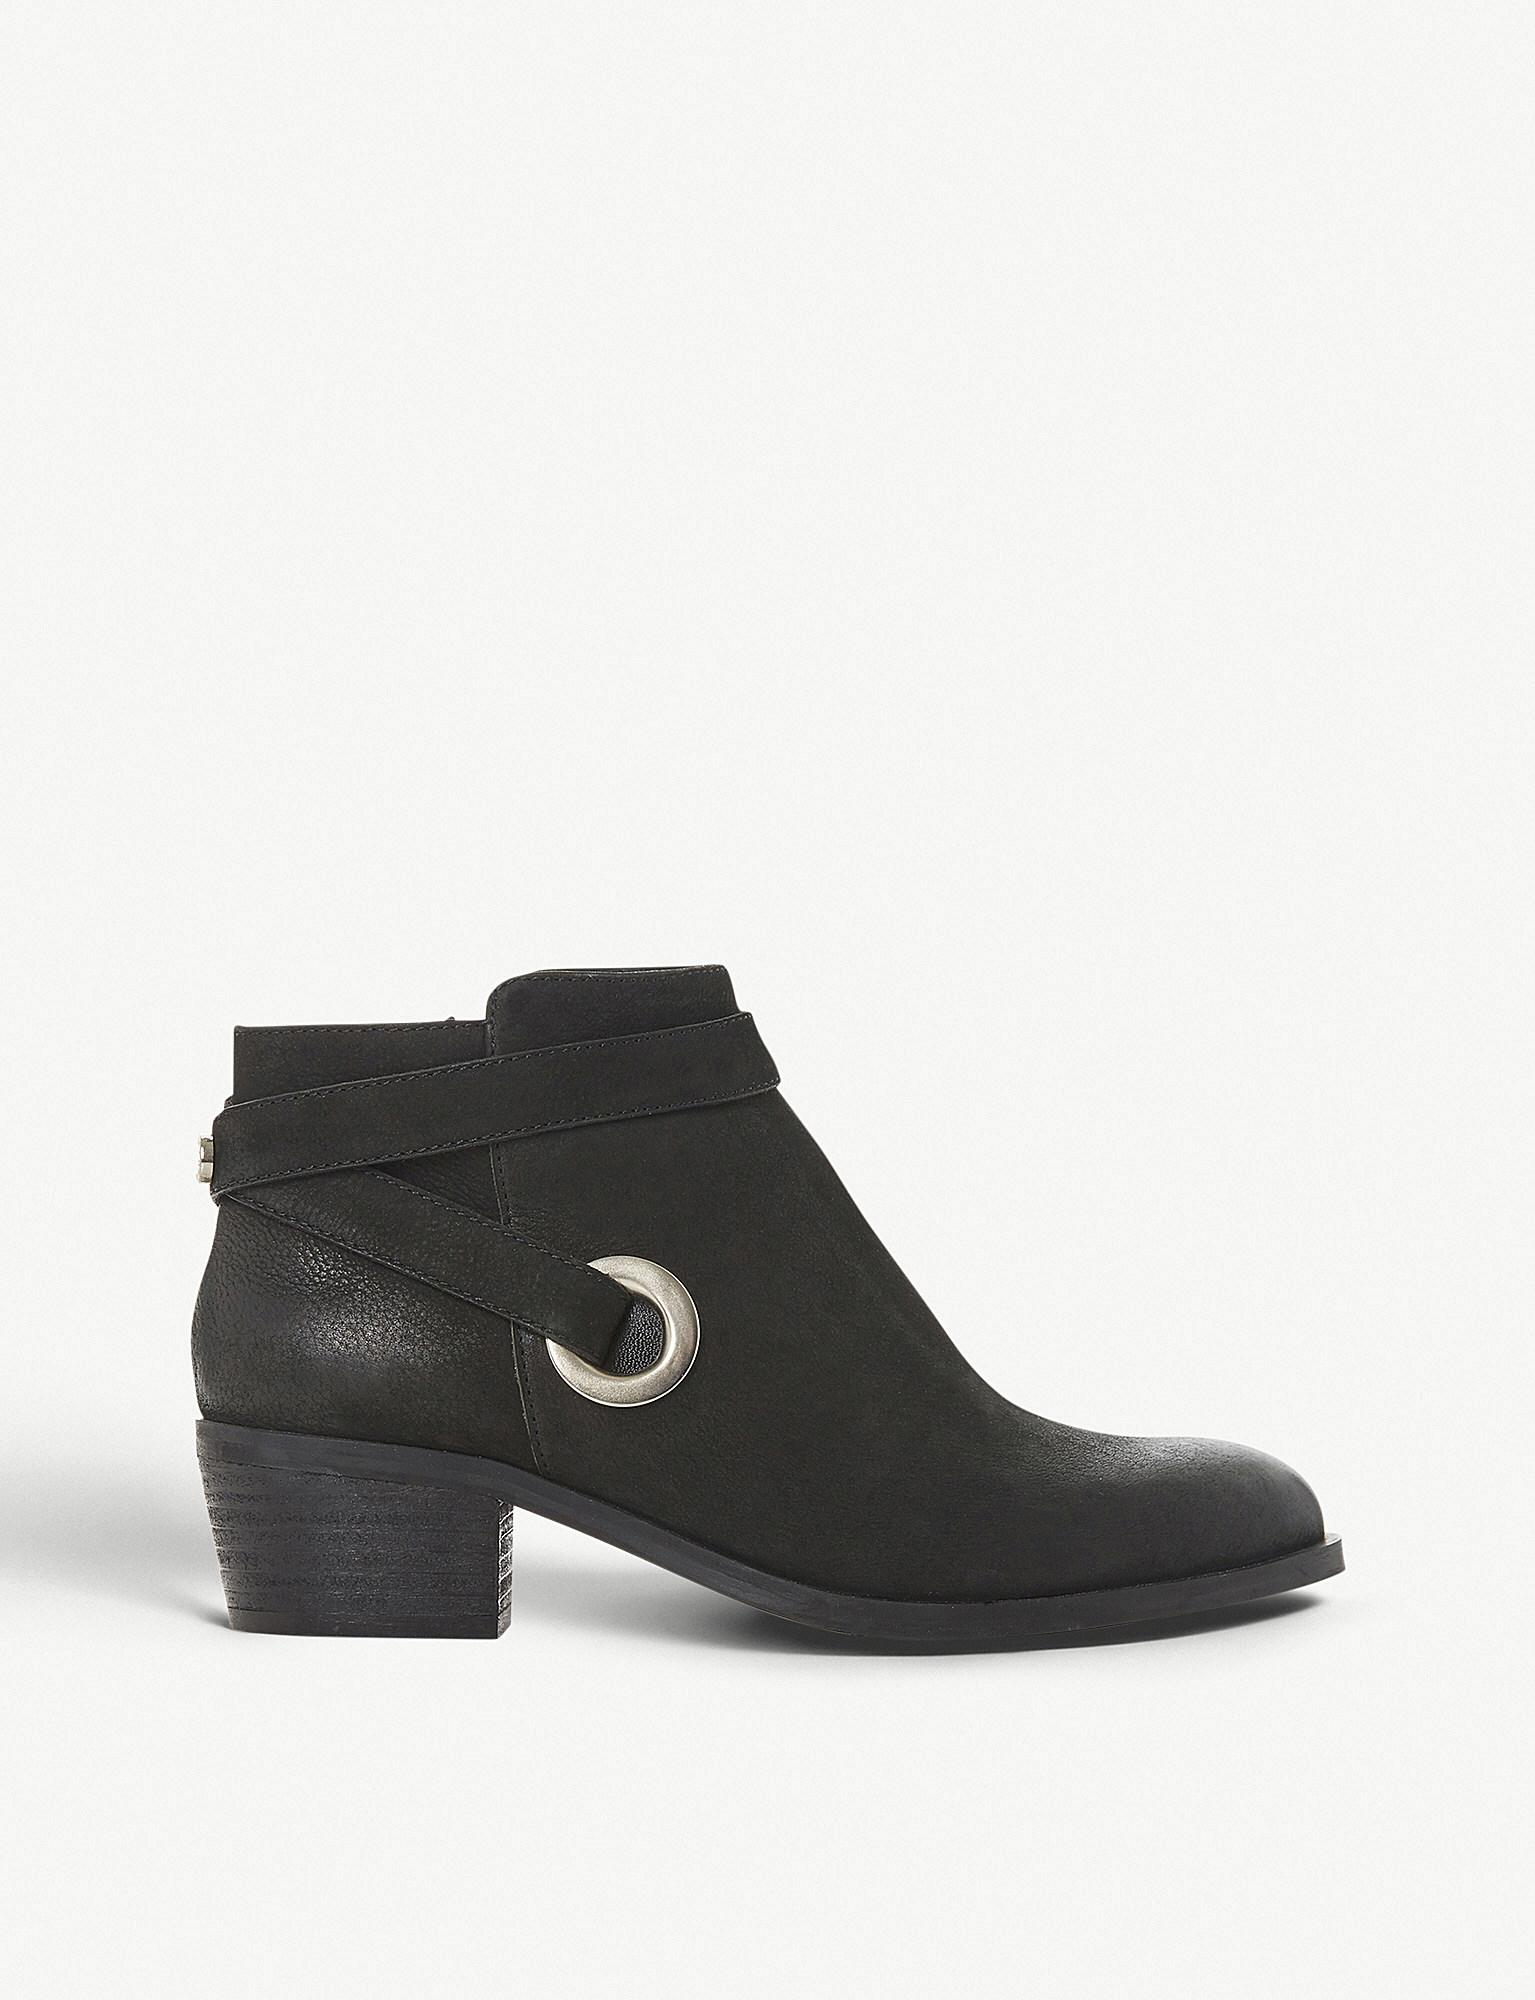 d10db6b7362 Lyst - Steve Madden Owald Cross-strap Leather Ankle Boots in Black